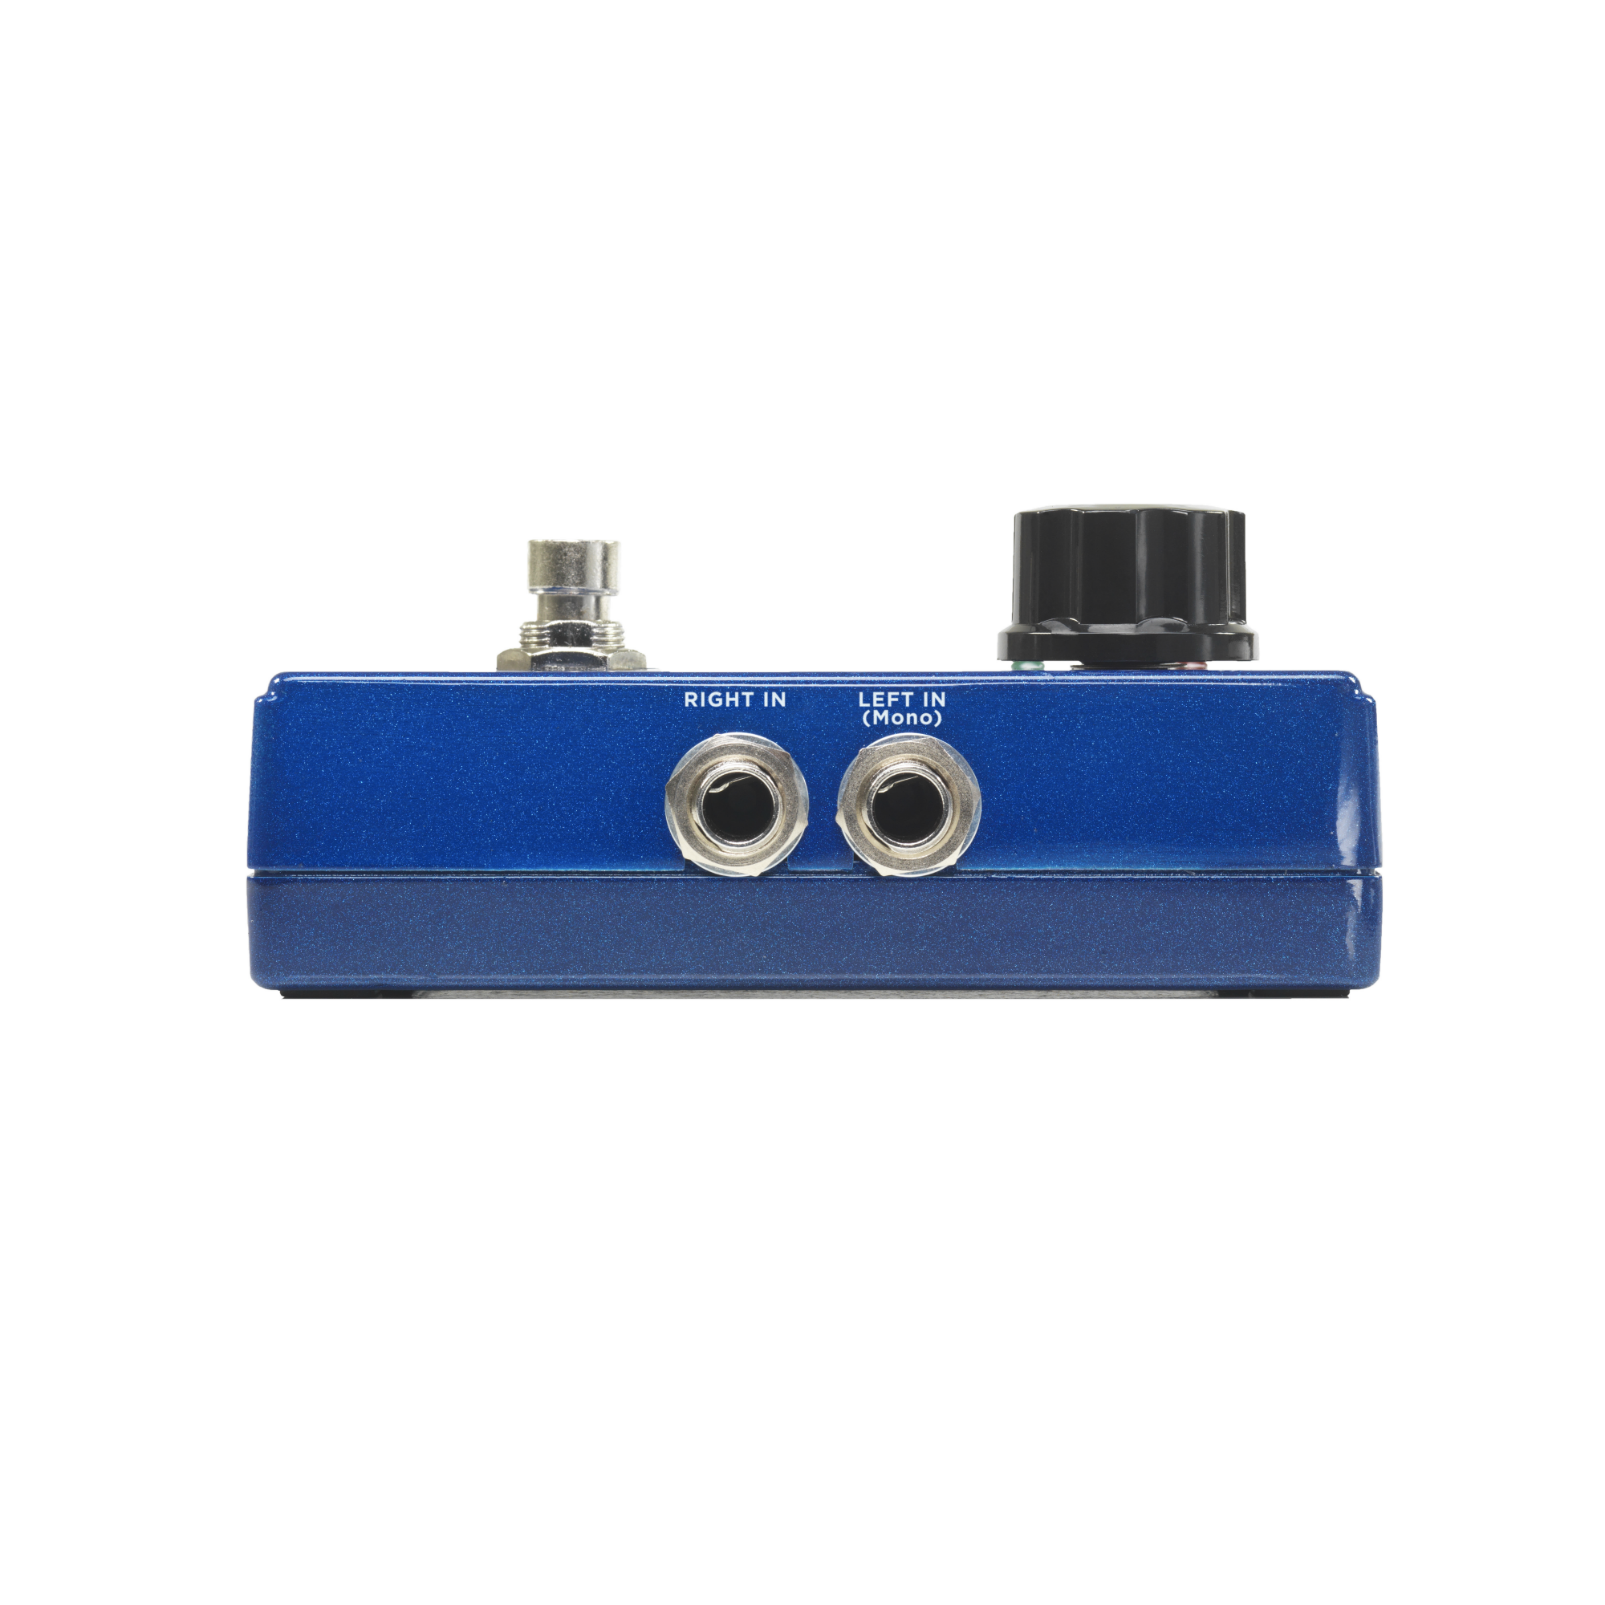 JamMan Express XT (discontinued) - Blue - Compact Stereo Looper with JamSync - Detailshot 3